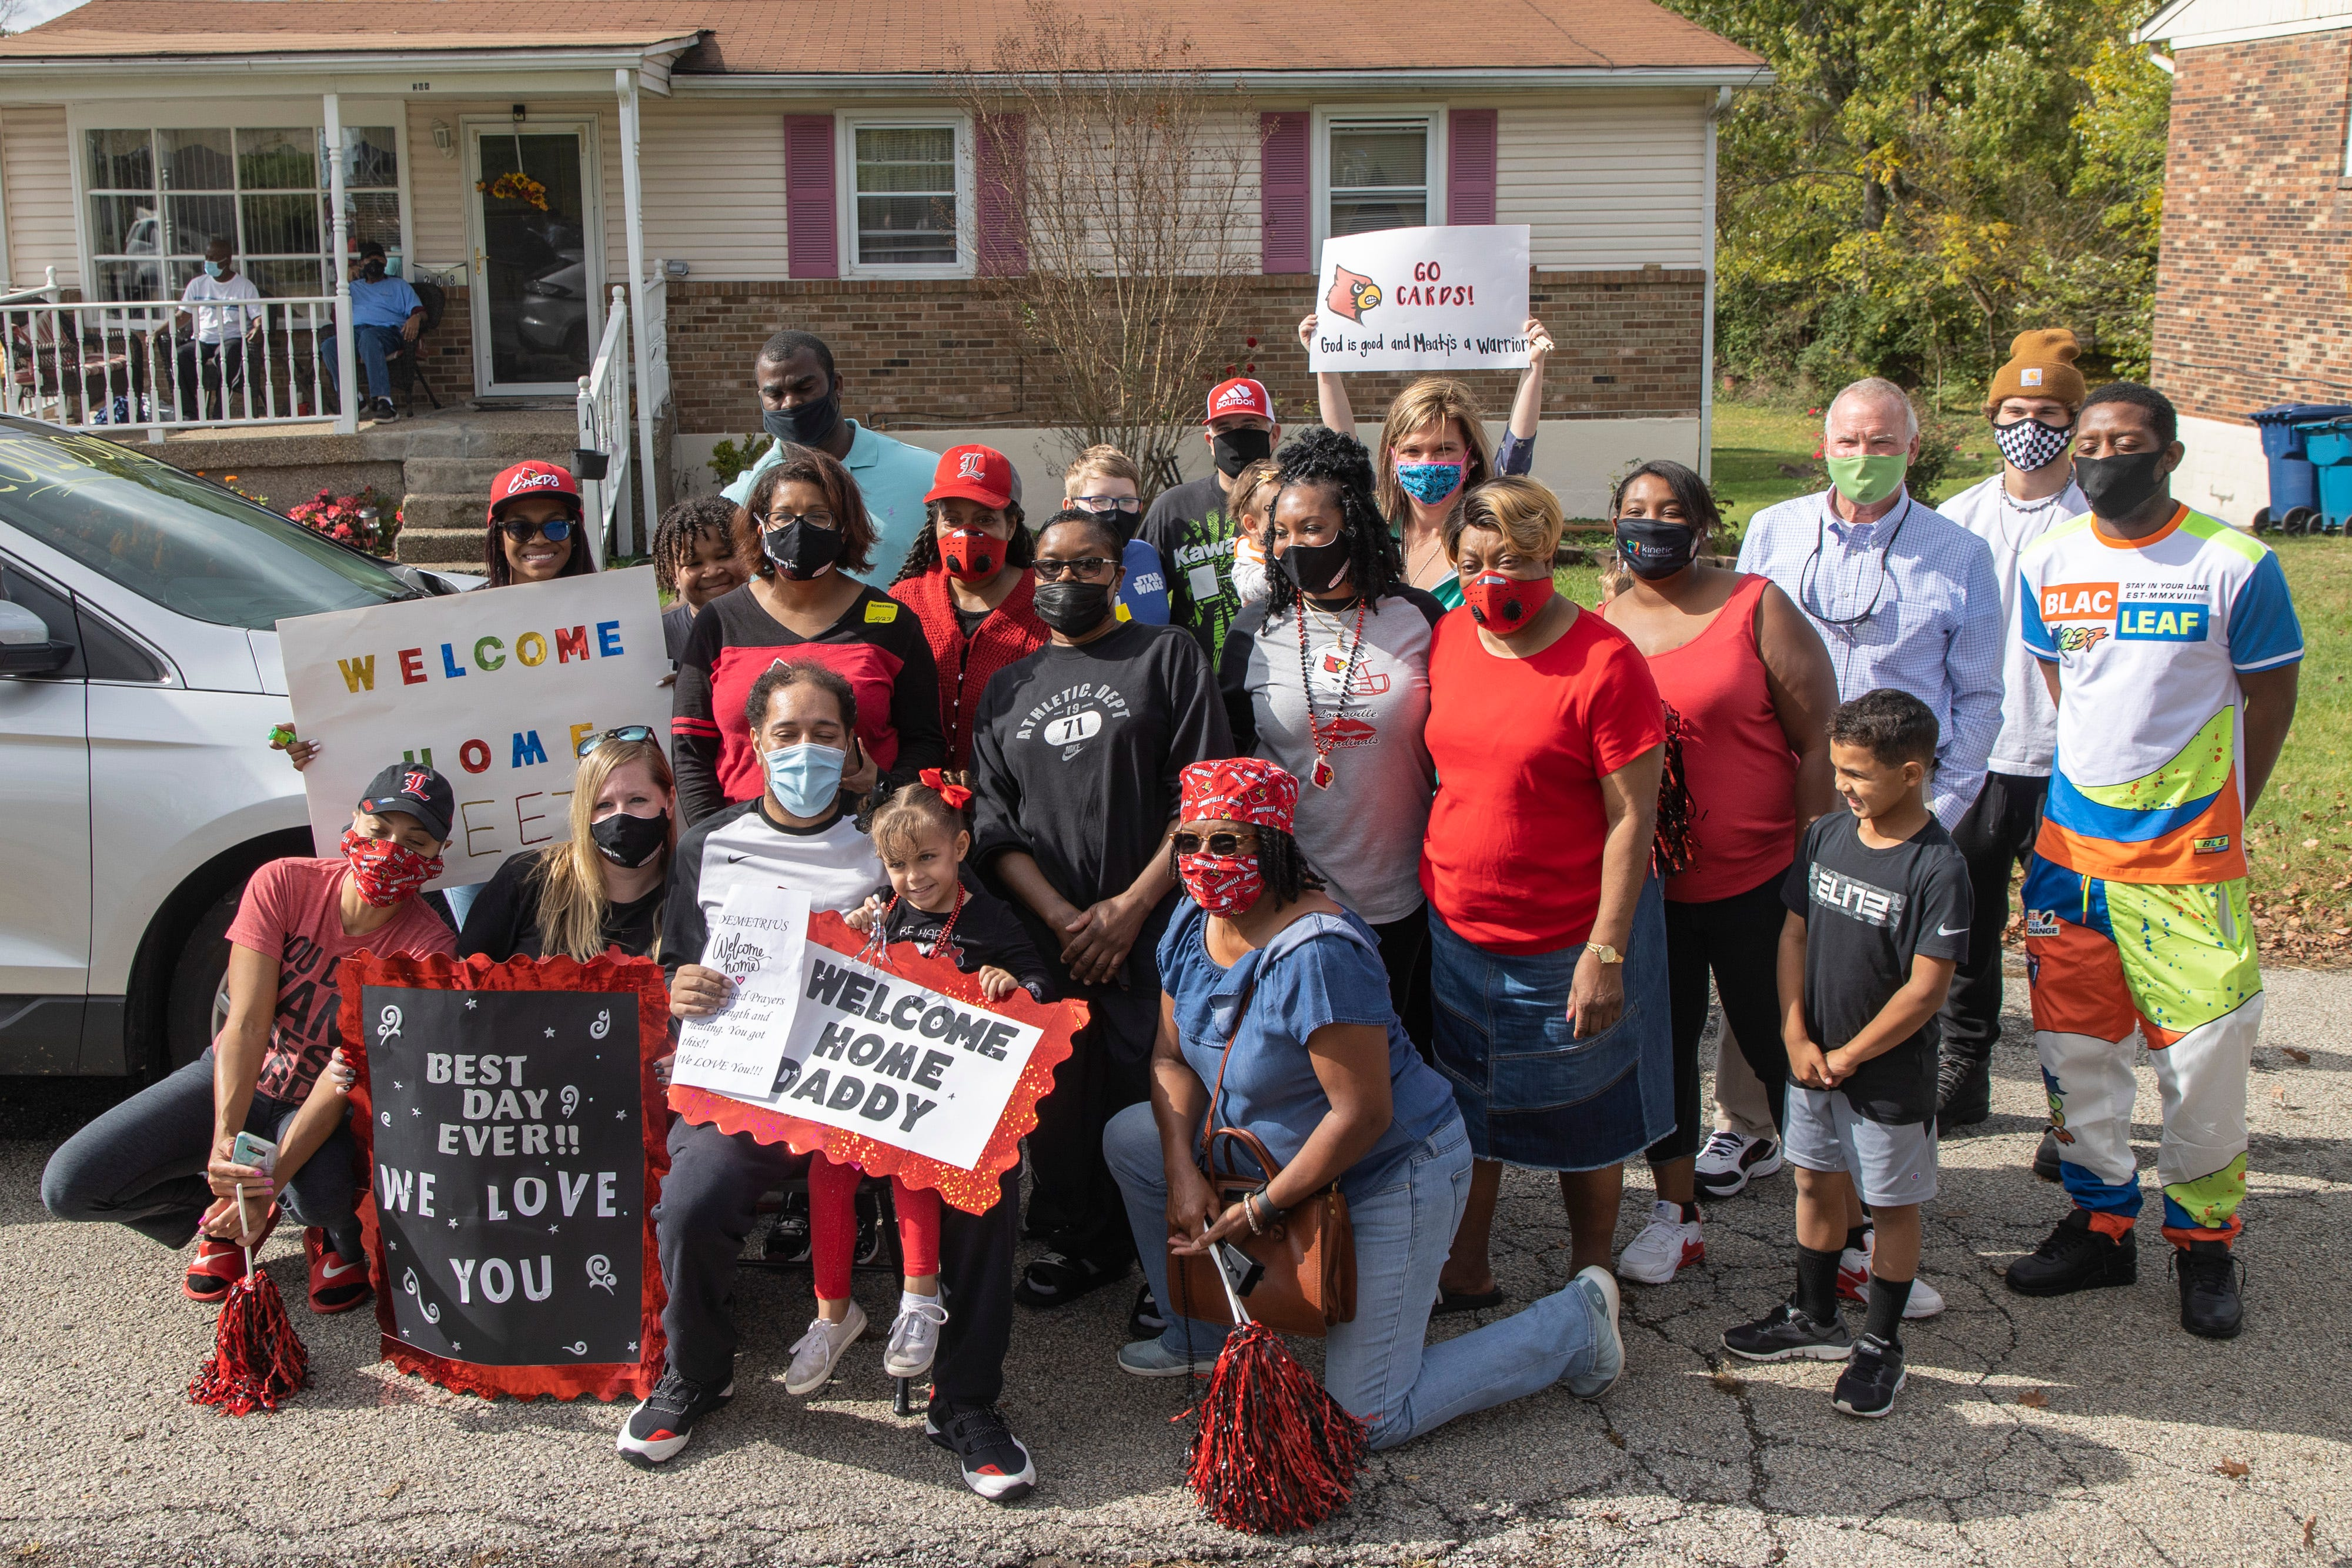 Demetrius Booker, who spent 95 days in the hospital after battling COVID-19, returns home to friends and family after leaving Louisville Baptist East on Friday.. Oct. 23, 2020